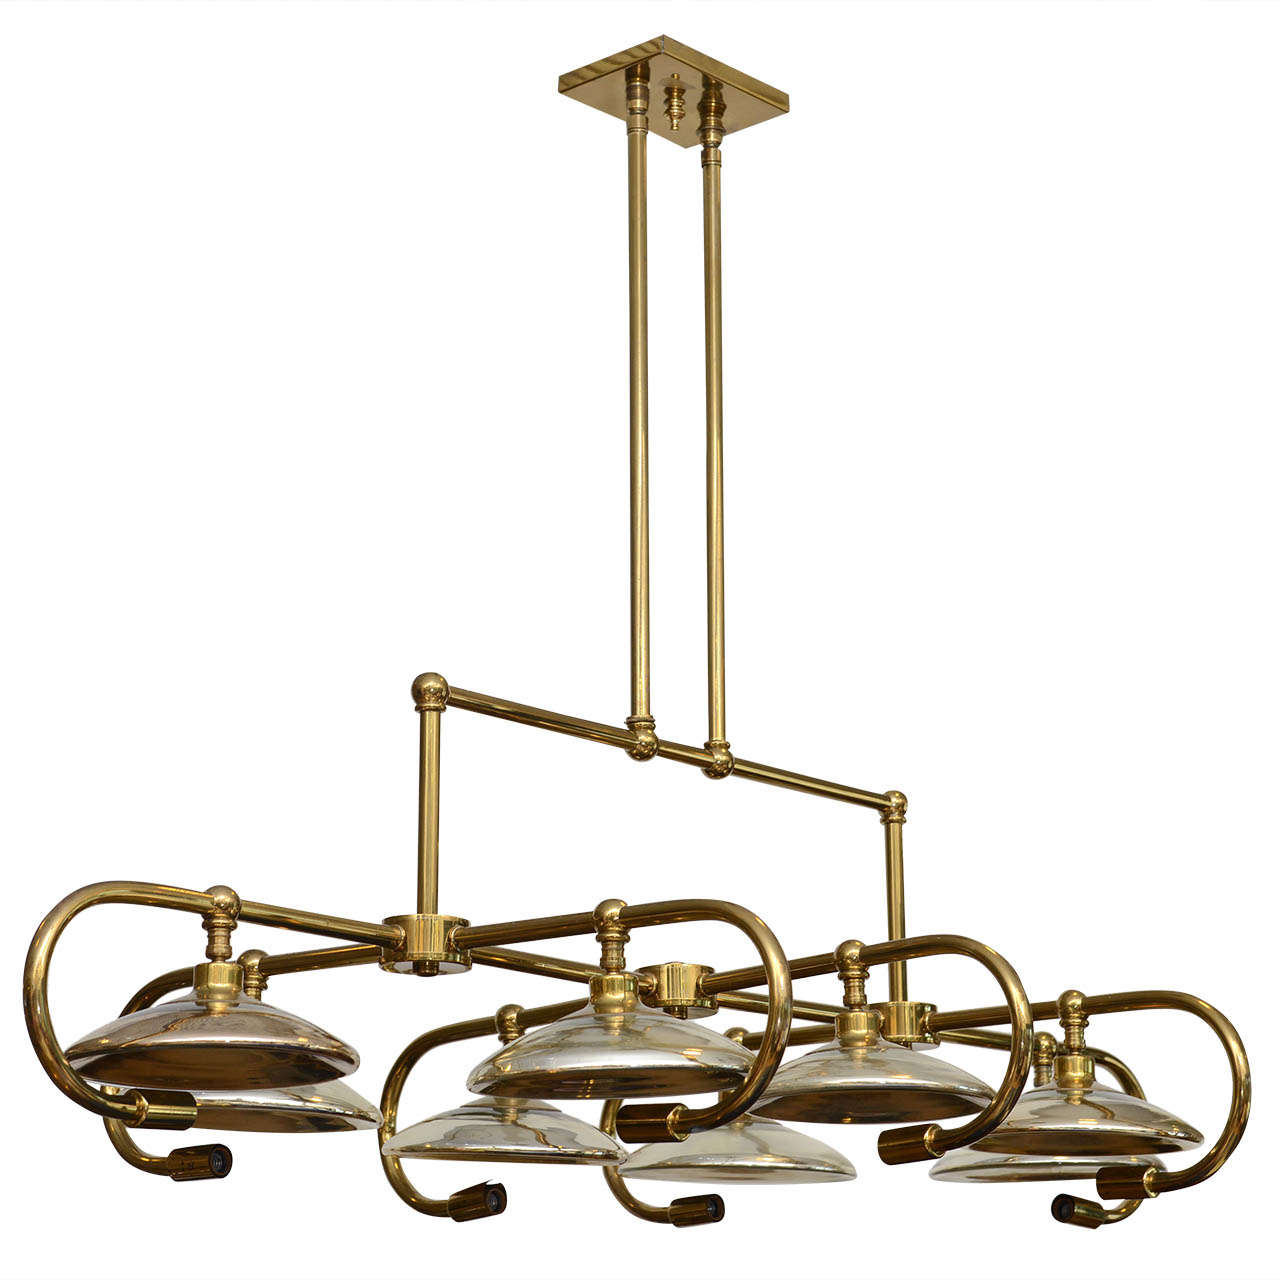 Oversized Brass Chandelier With Mercury Glass Diffusers At